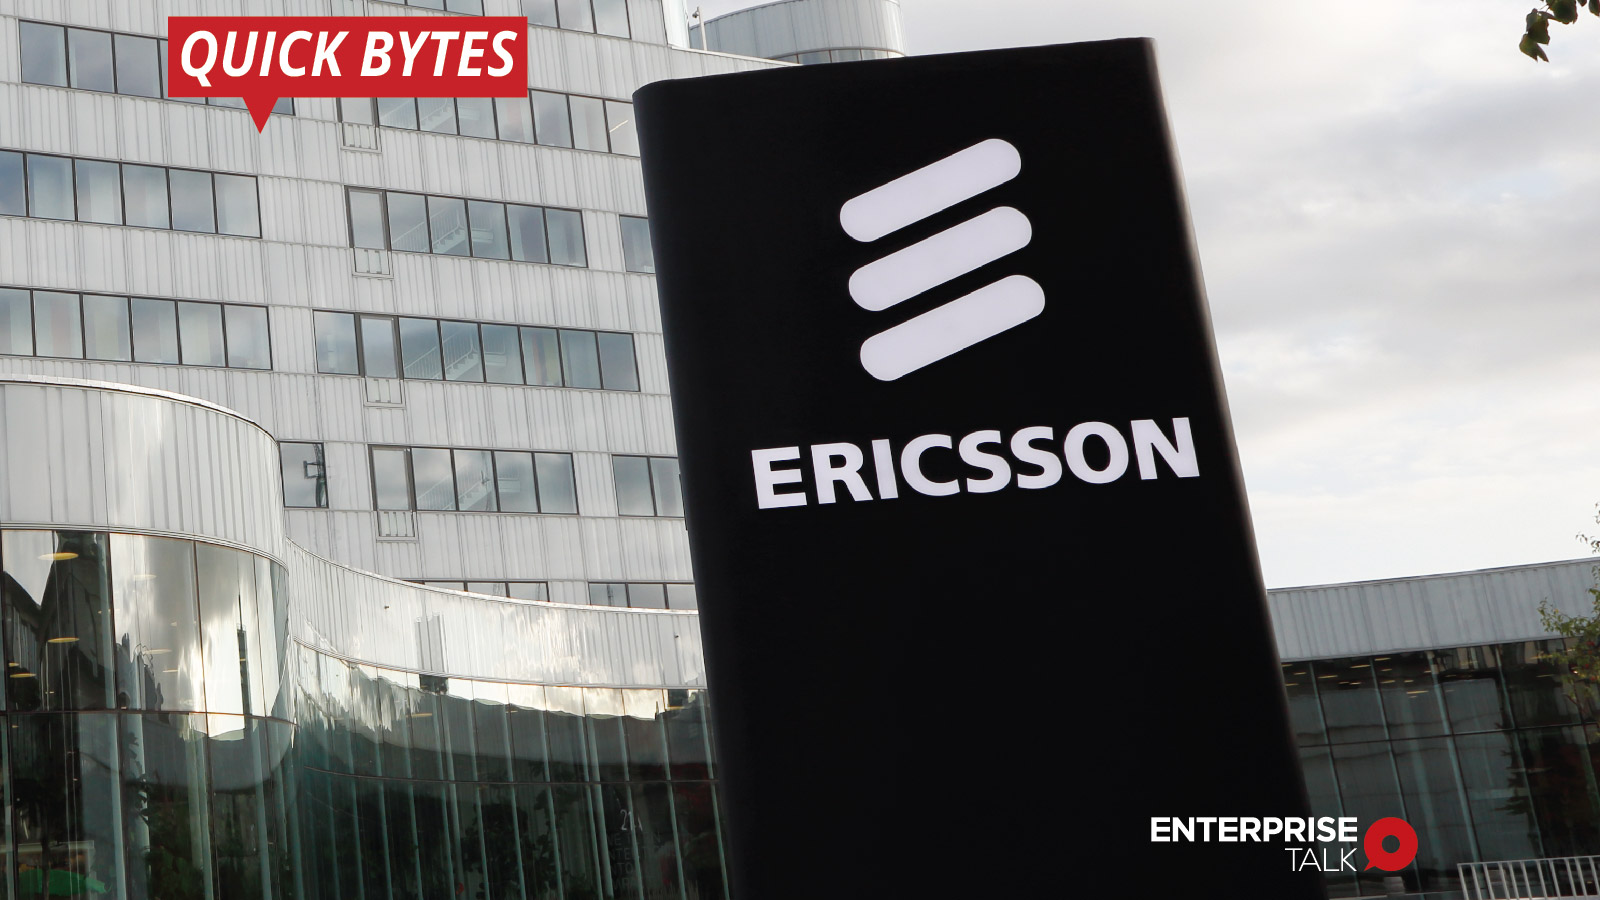 Ericsson, 5G, subscriptions, network, coverage